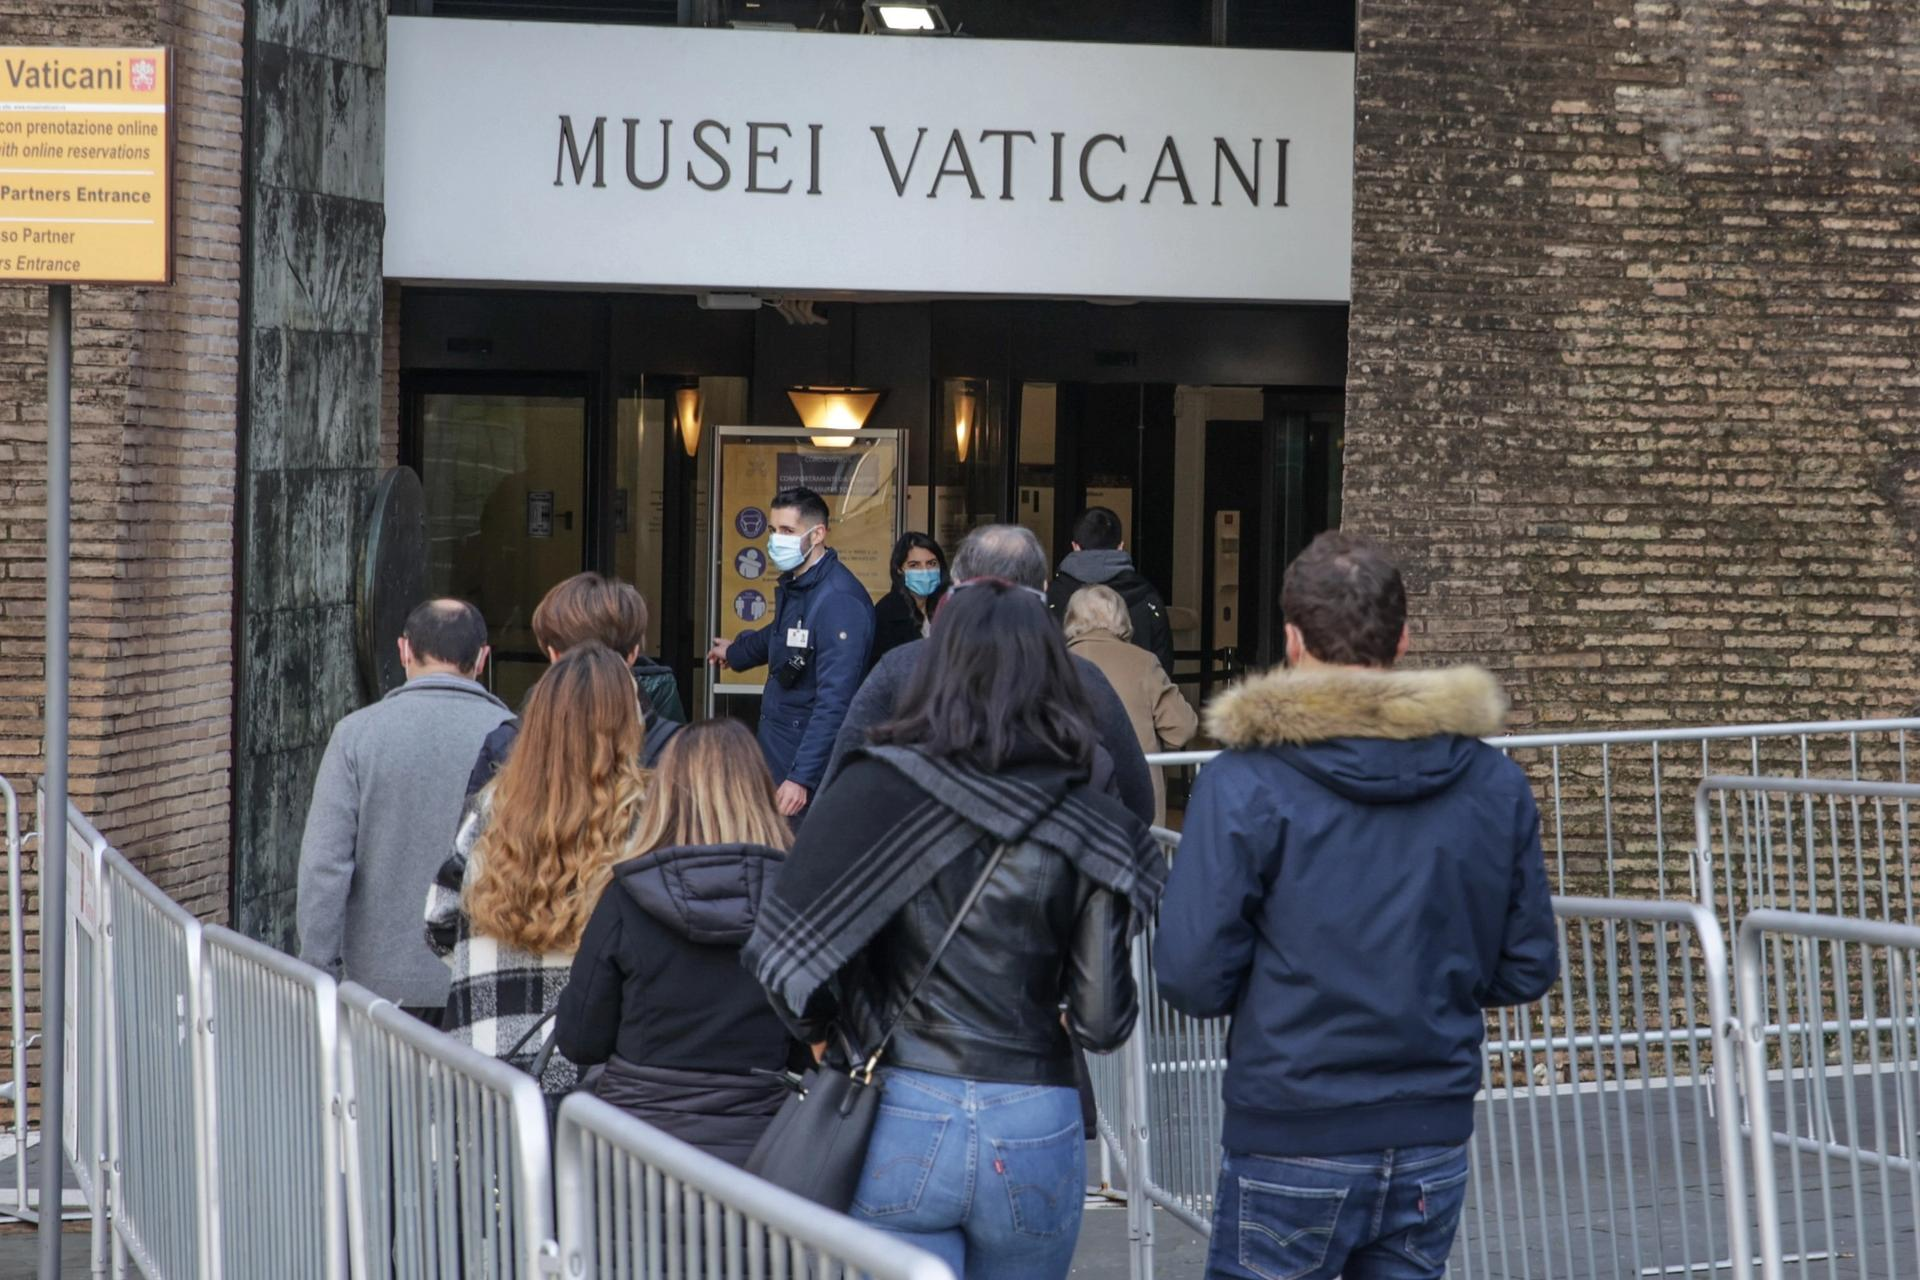 Visitors queuing for the Vatican Museums, which reopened to the public on 1 February after three months' closure © IPA MilestoneMedia/PA Images